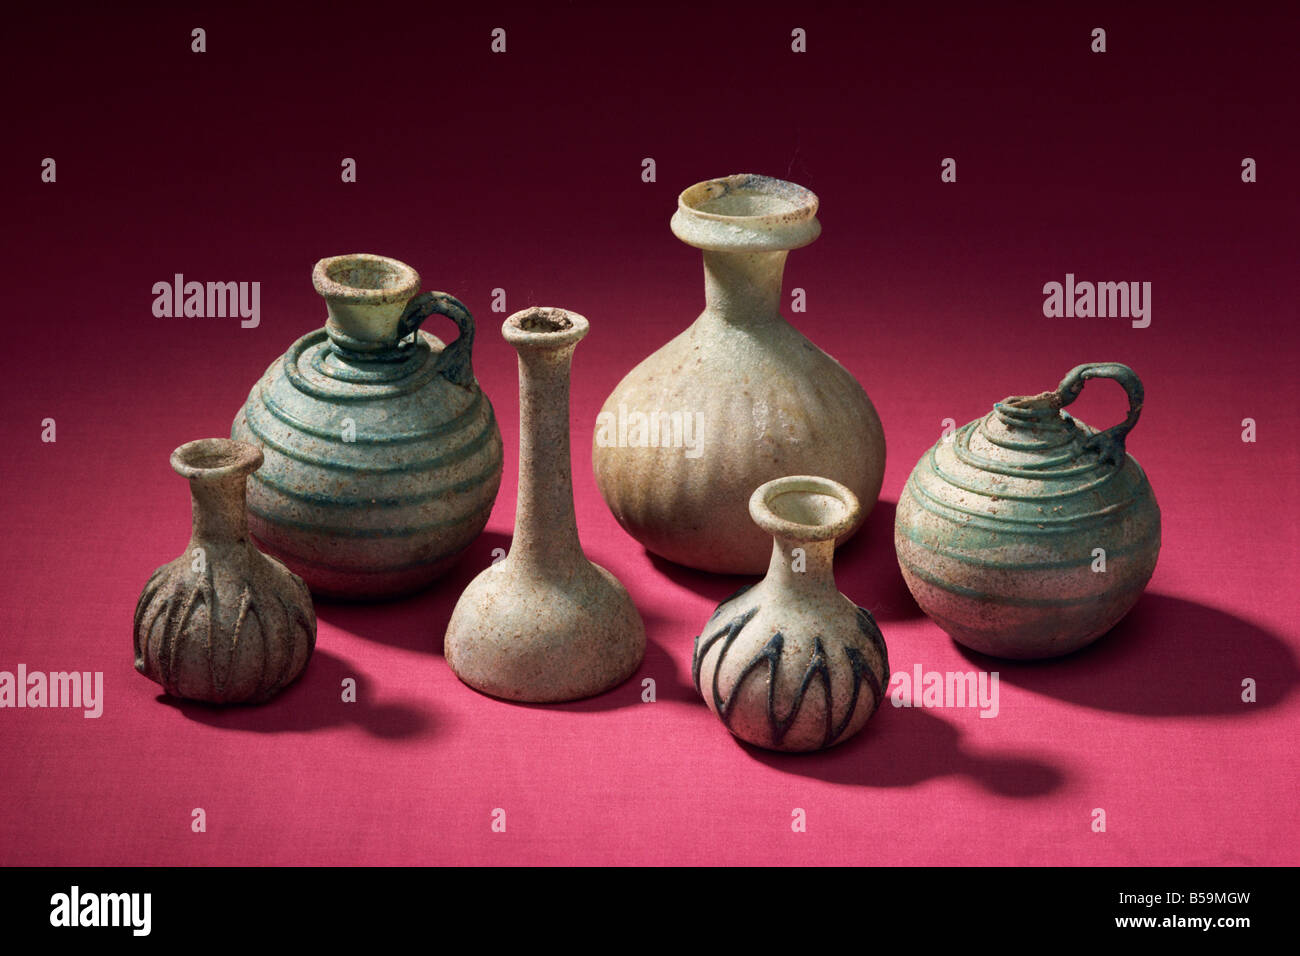 Glass bottles from Tylos period, New National Museum, Manama, Bahrain, Middle East - Stock Image